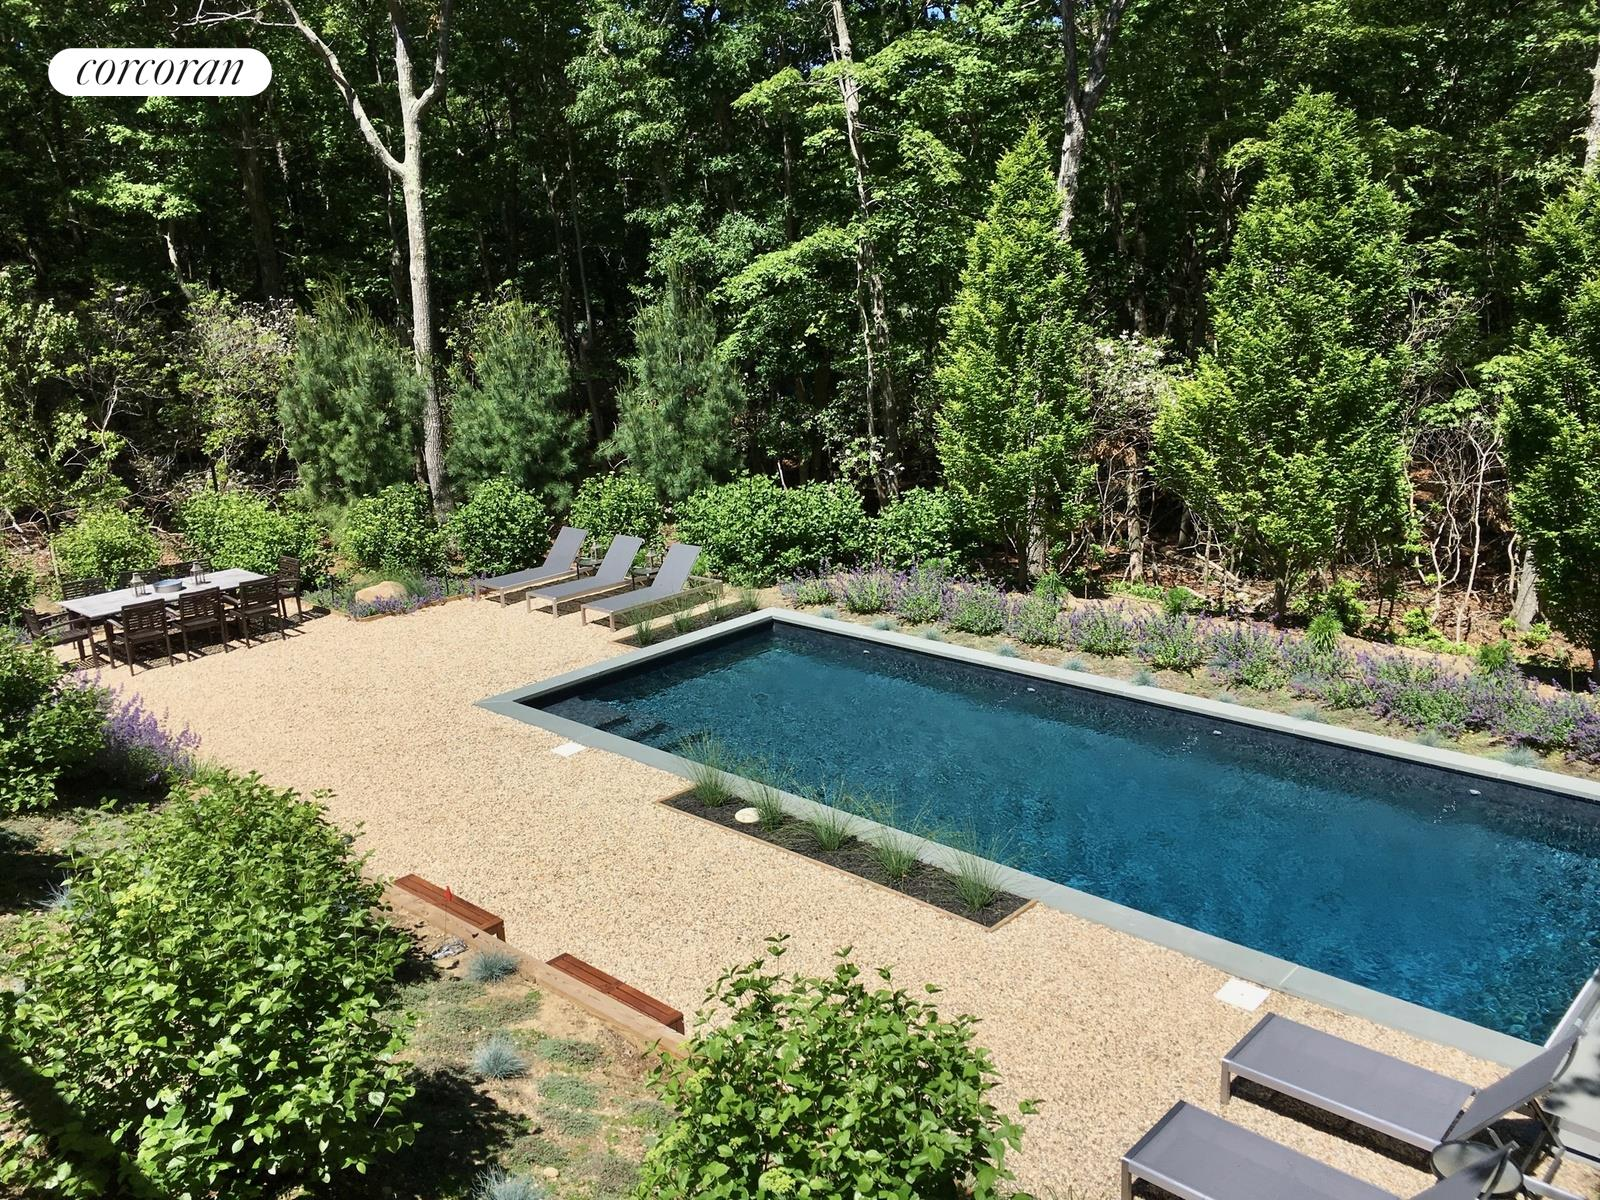 Corcoran, 1403 Millstone Road, Sag Harbor Rentals, South